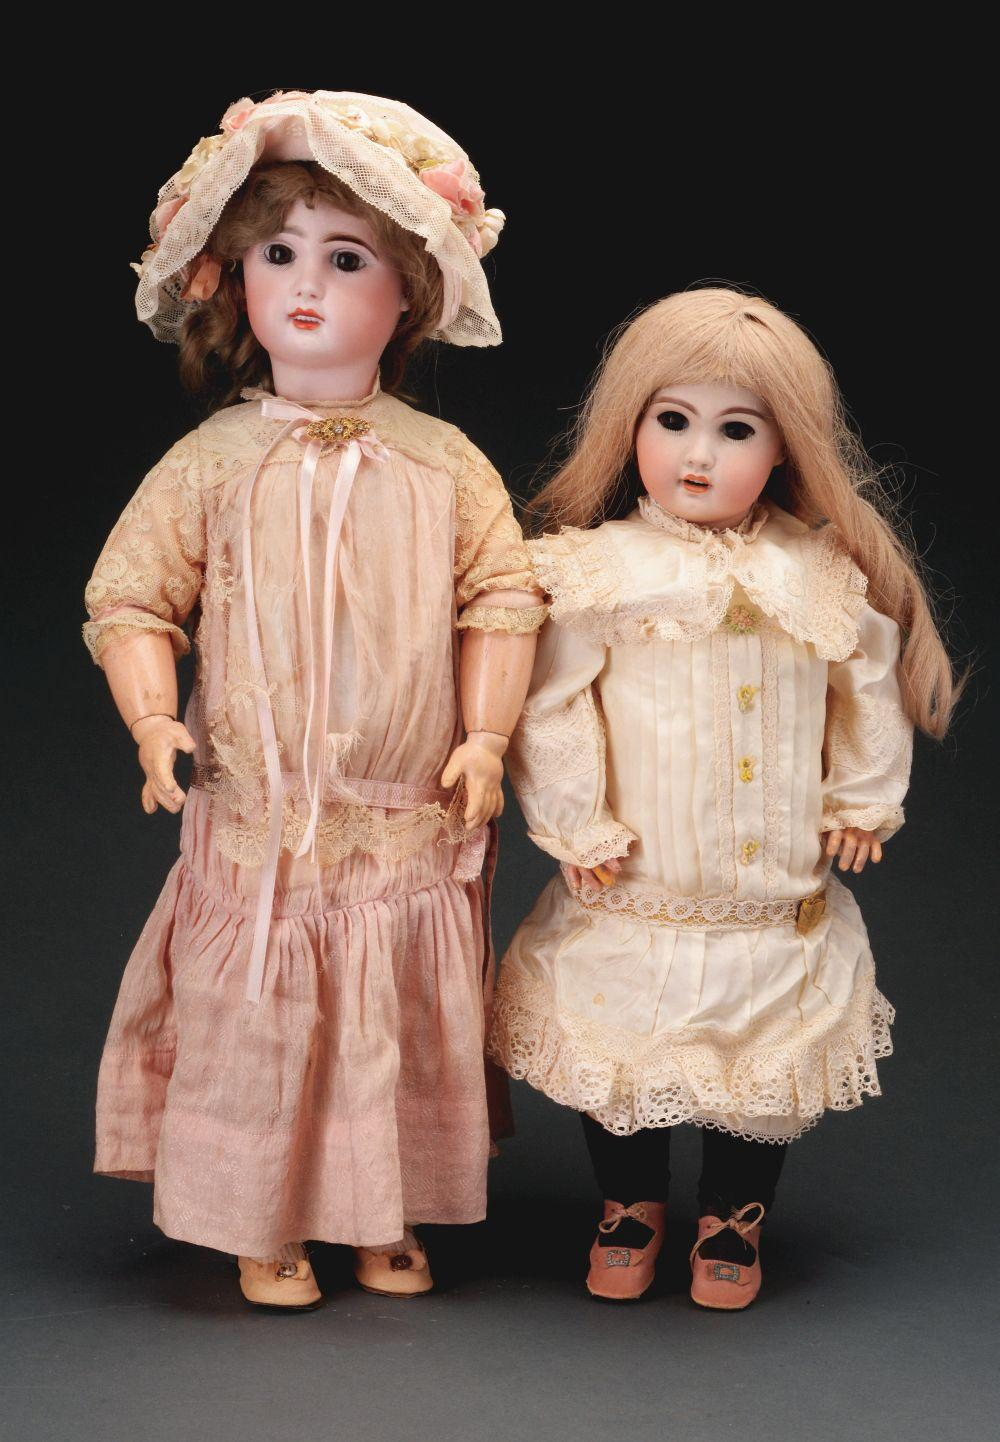 Lot of 2: Later Jumeau-Type Dolls.